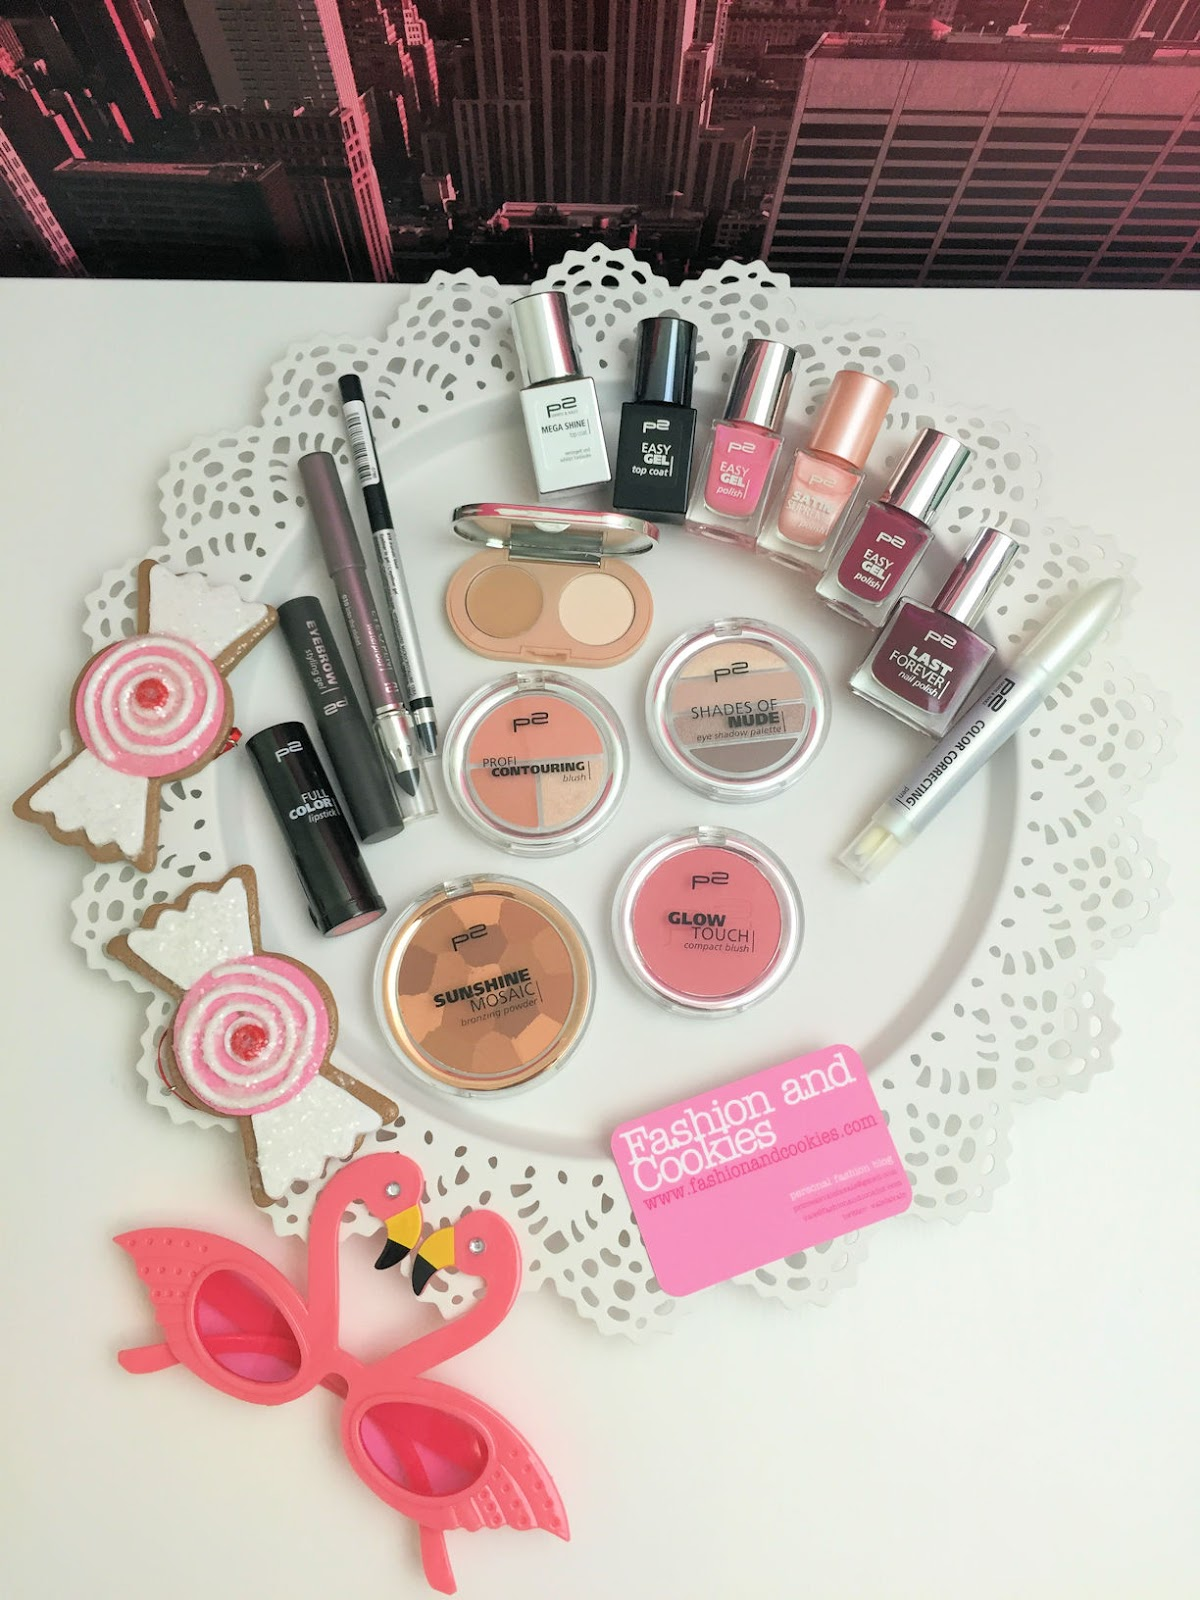 p2 Cosmetics makeup low cost review e haul su Fashion and Cookies beauty blog, beauty blogger